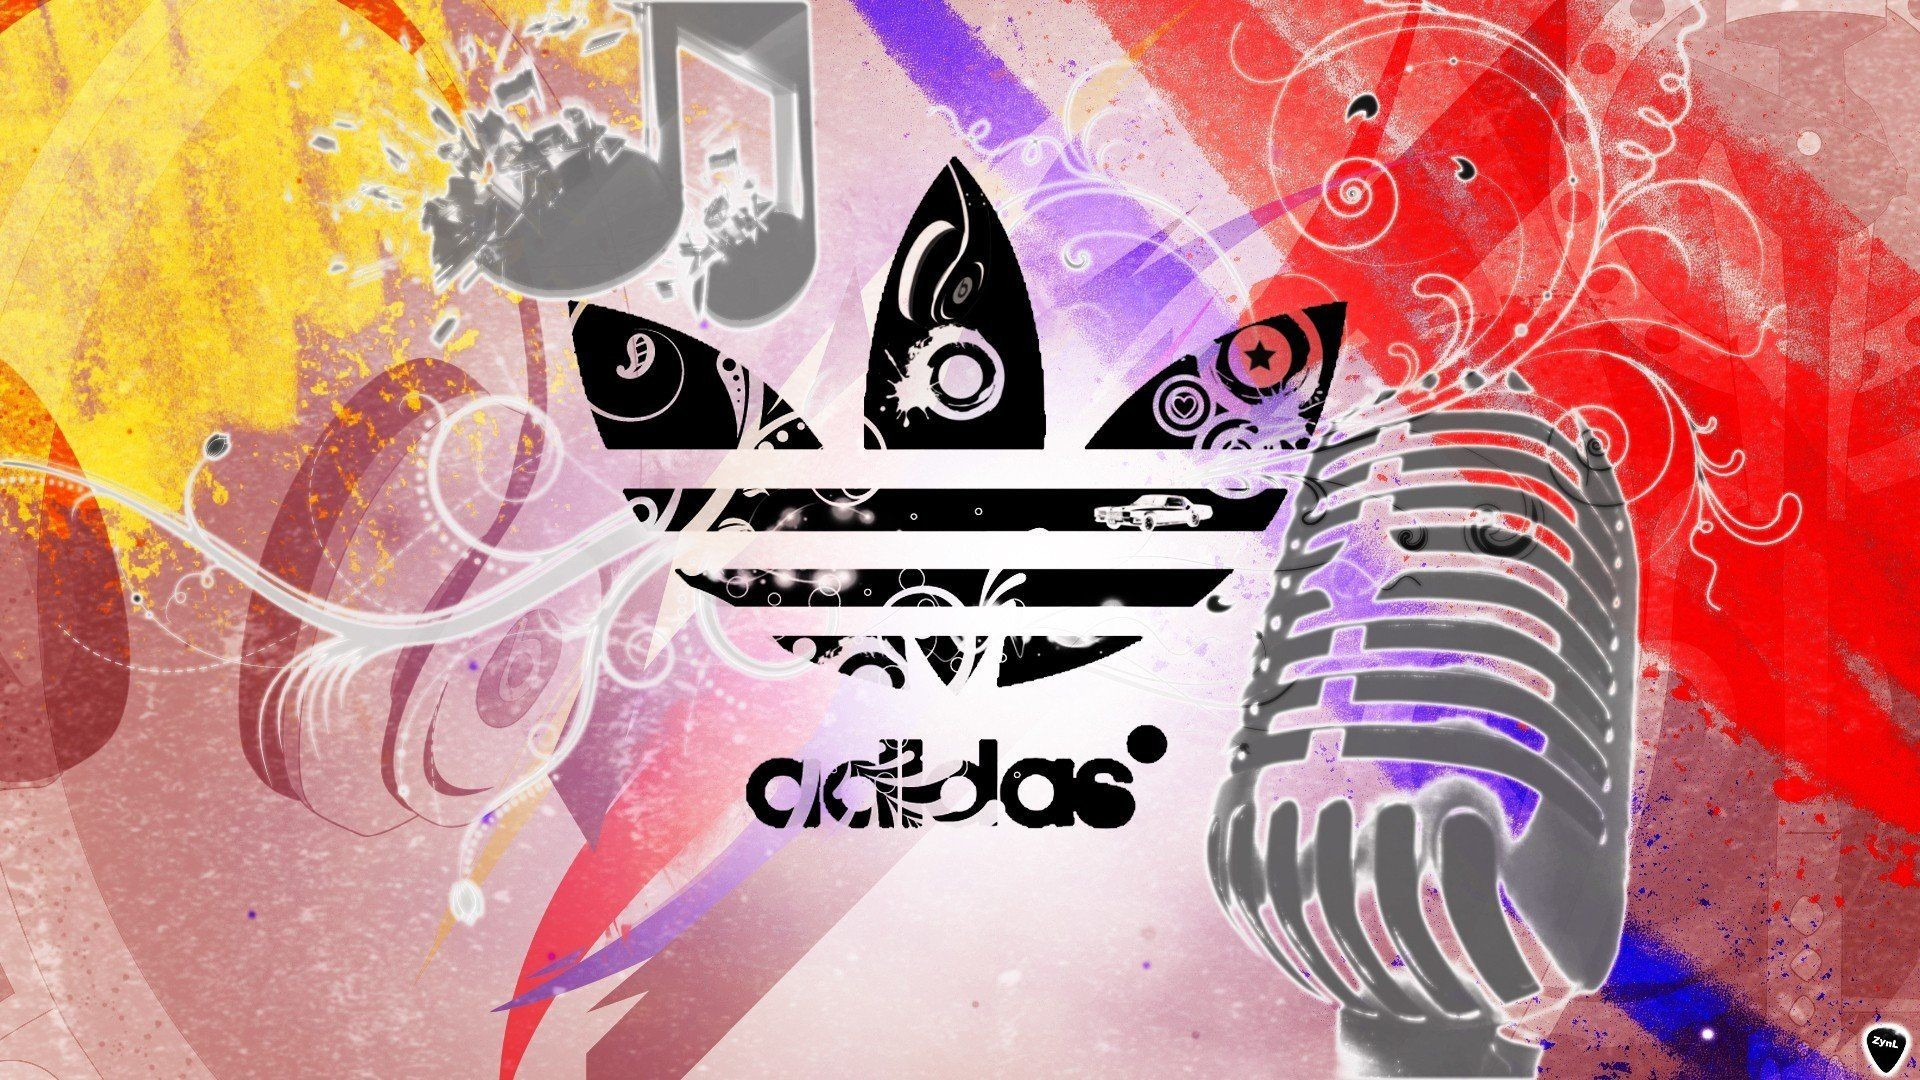 Res: 1920x1080, Collection of Adidas Wallpaper Logo on HDWallpapers 1920×1080 Imagenes Adidas  Wallpapers (32 Wallpapers) | Adorable Wallpapers